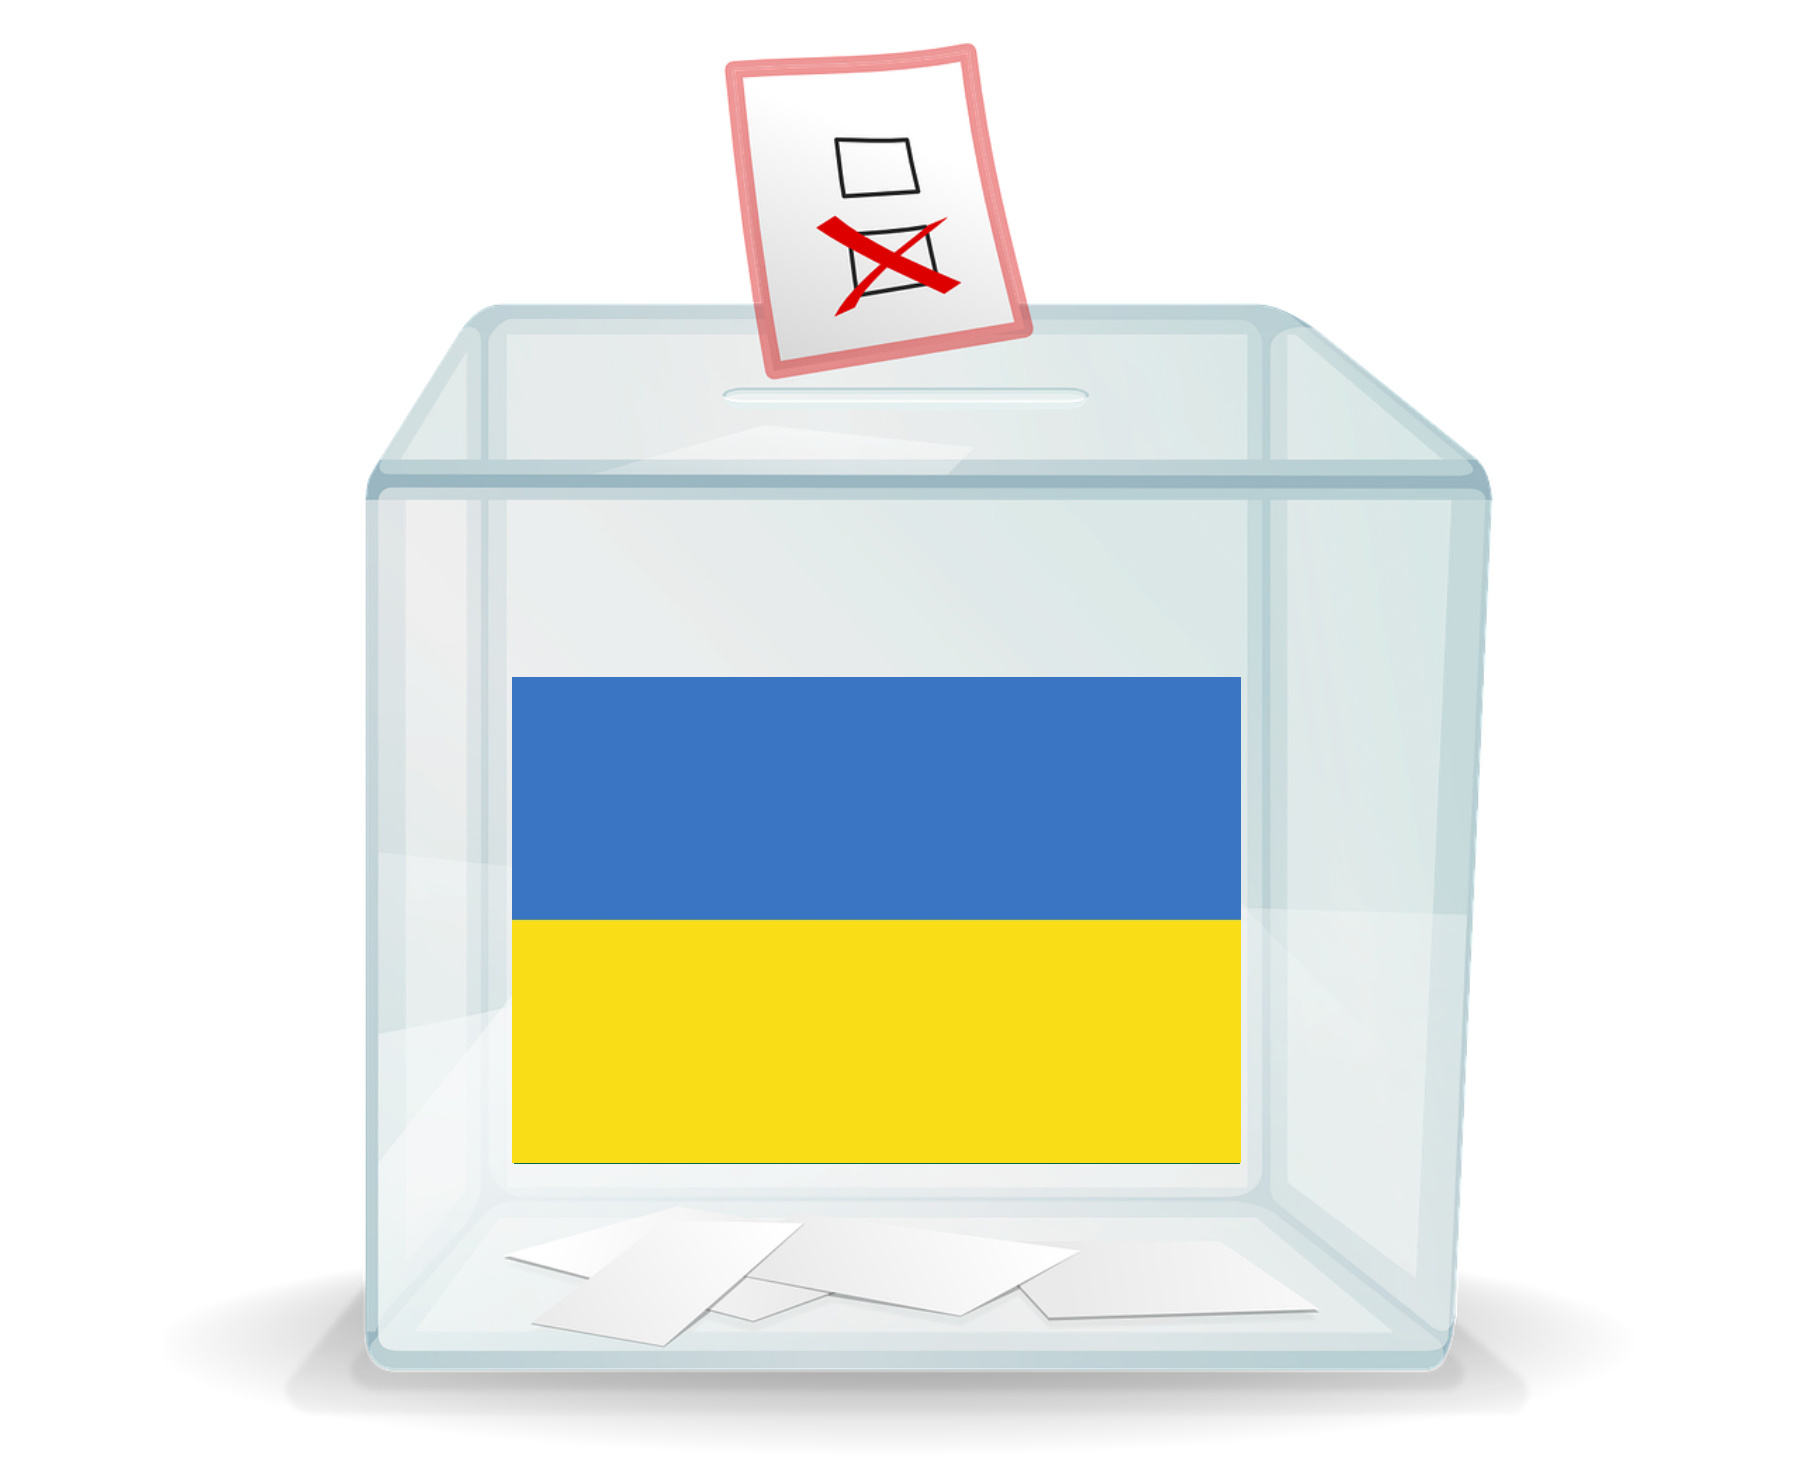 A ballot box with a Ukrainian flag on the front.